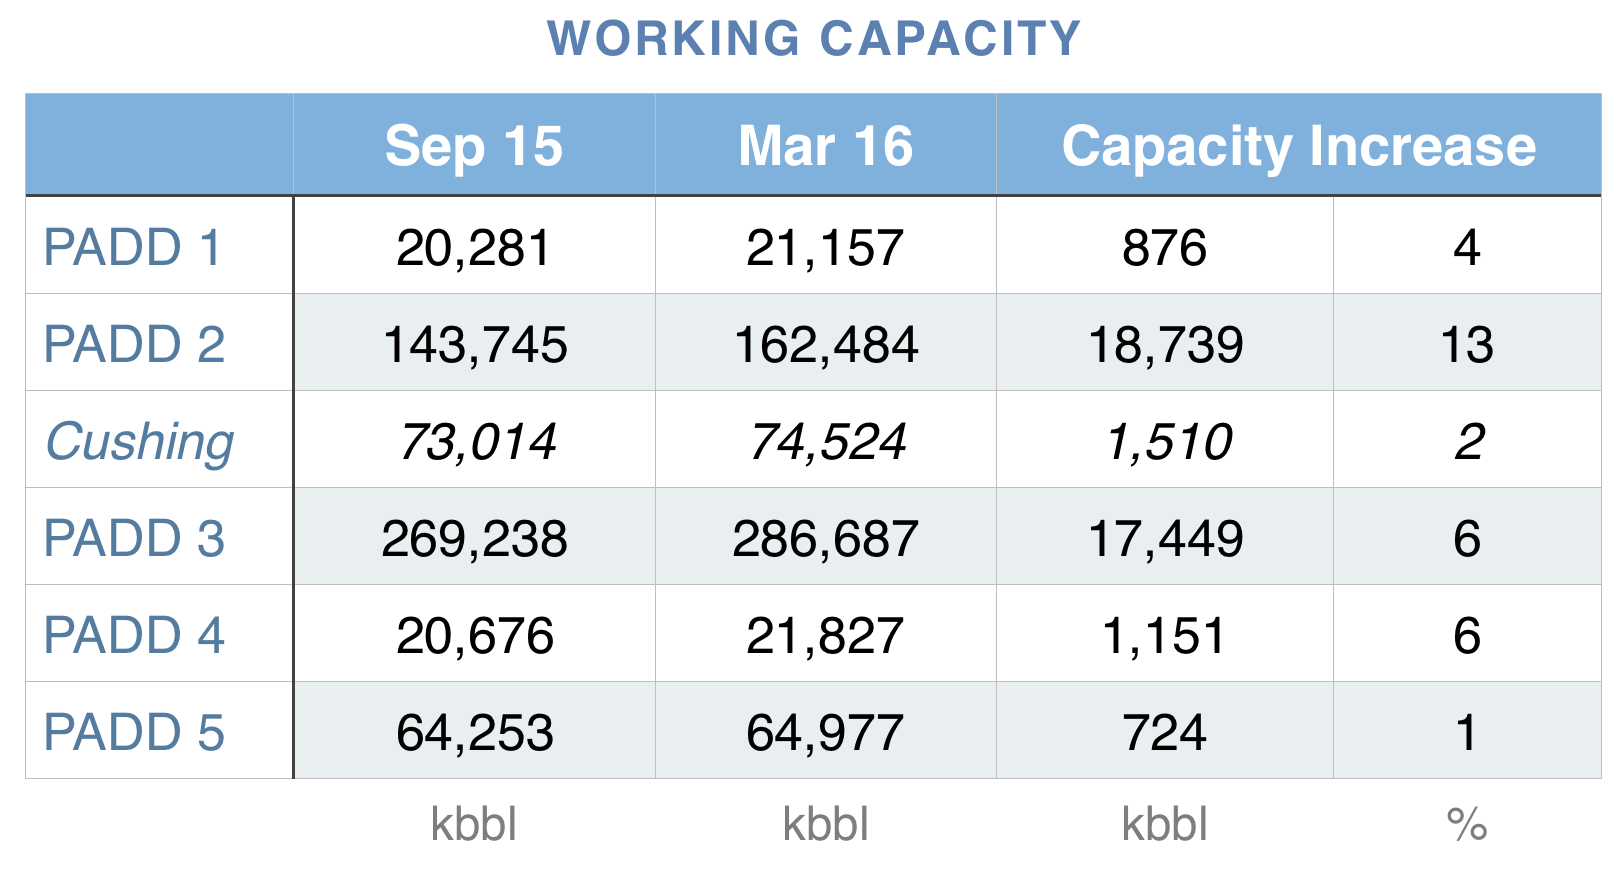 us-increase-crude-oil-storage-working-capacity.png